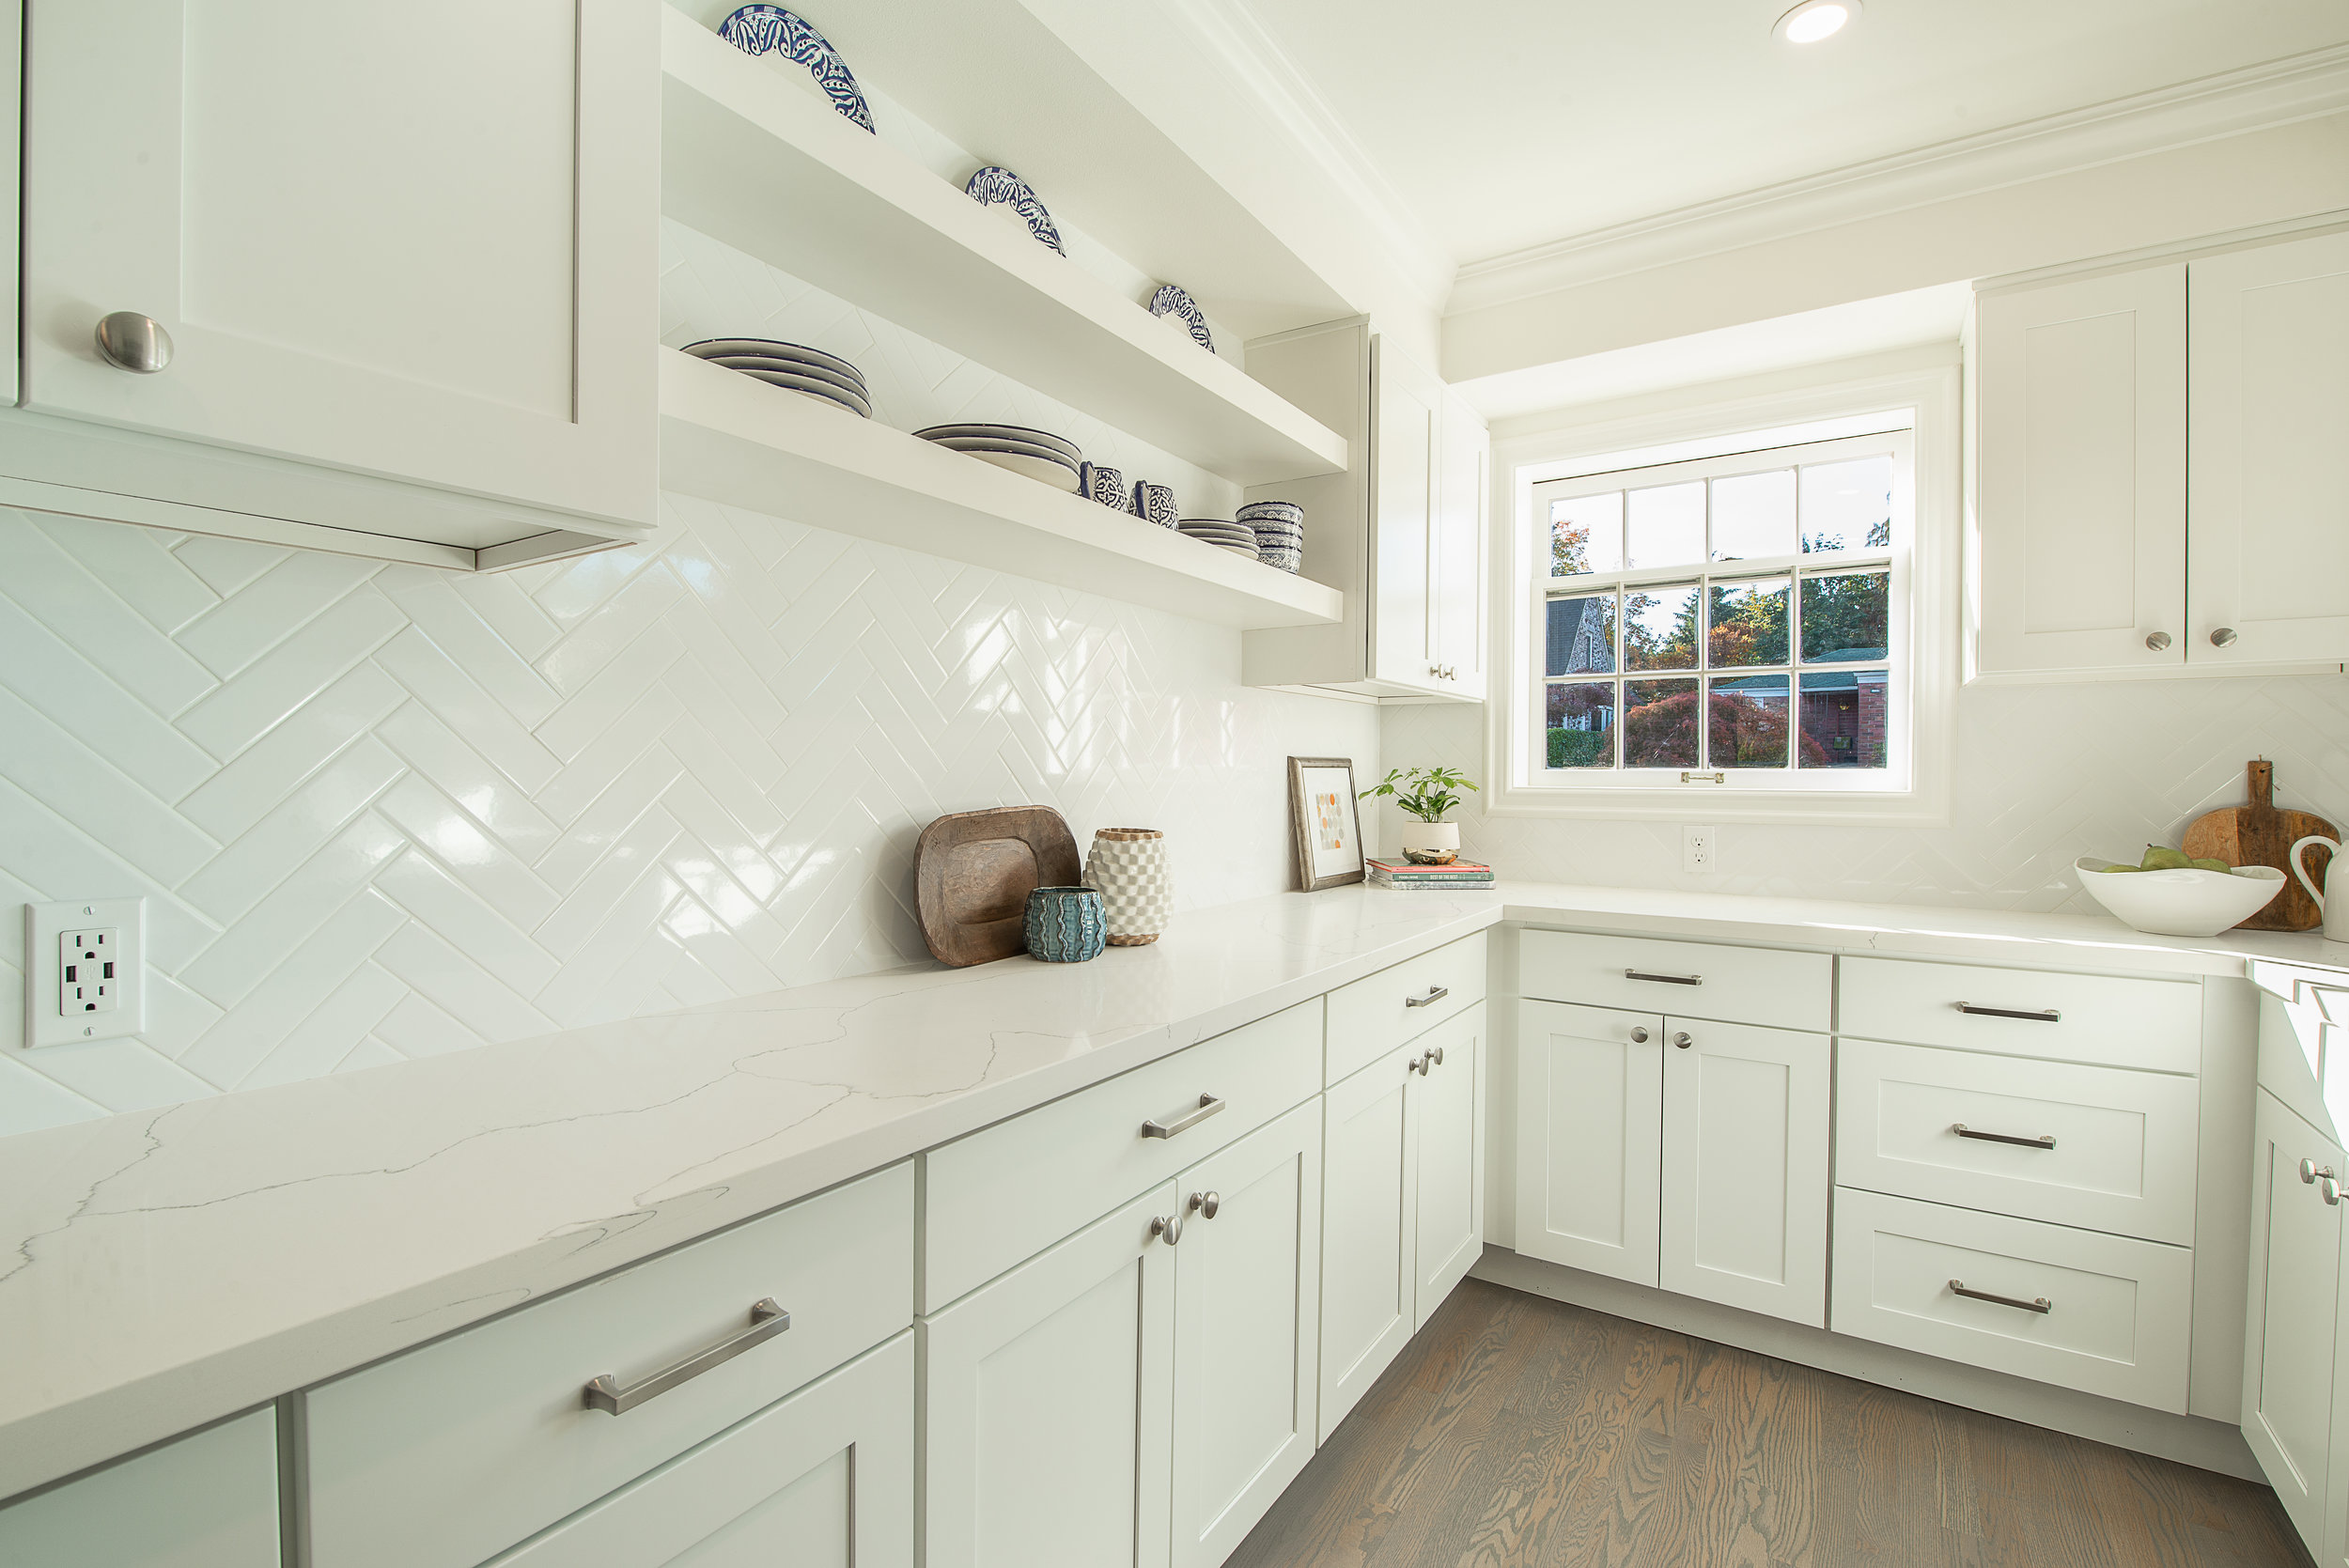 White on white: subway tiles - herringbone style, adjusted counter tops, and open shelving